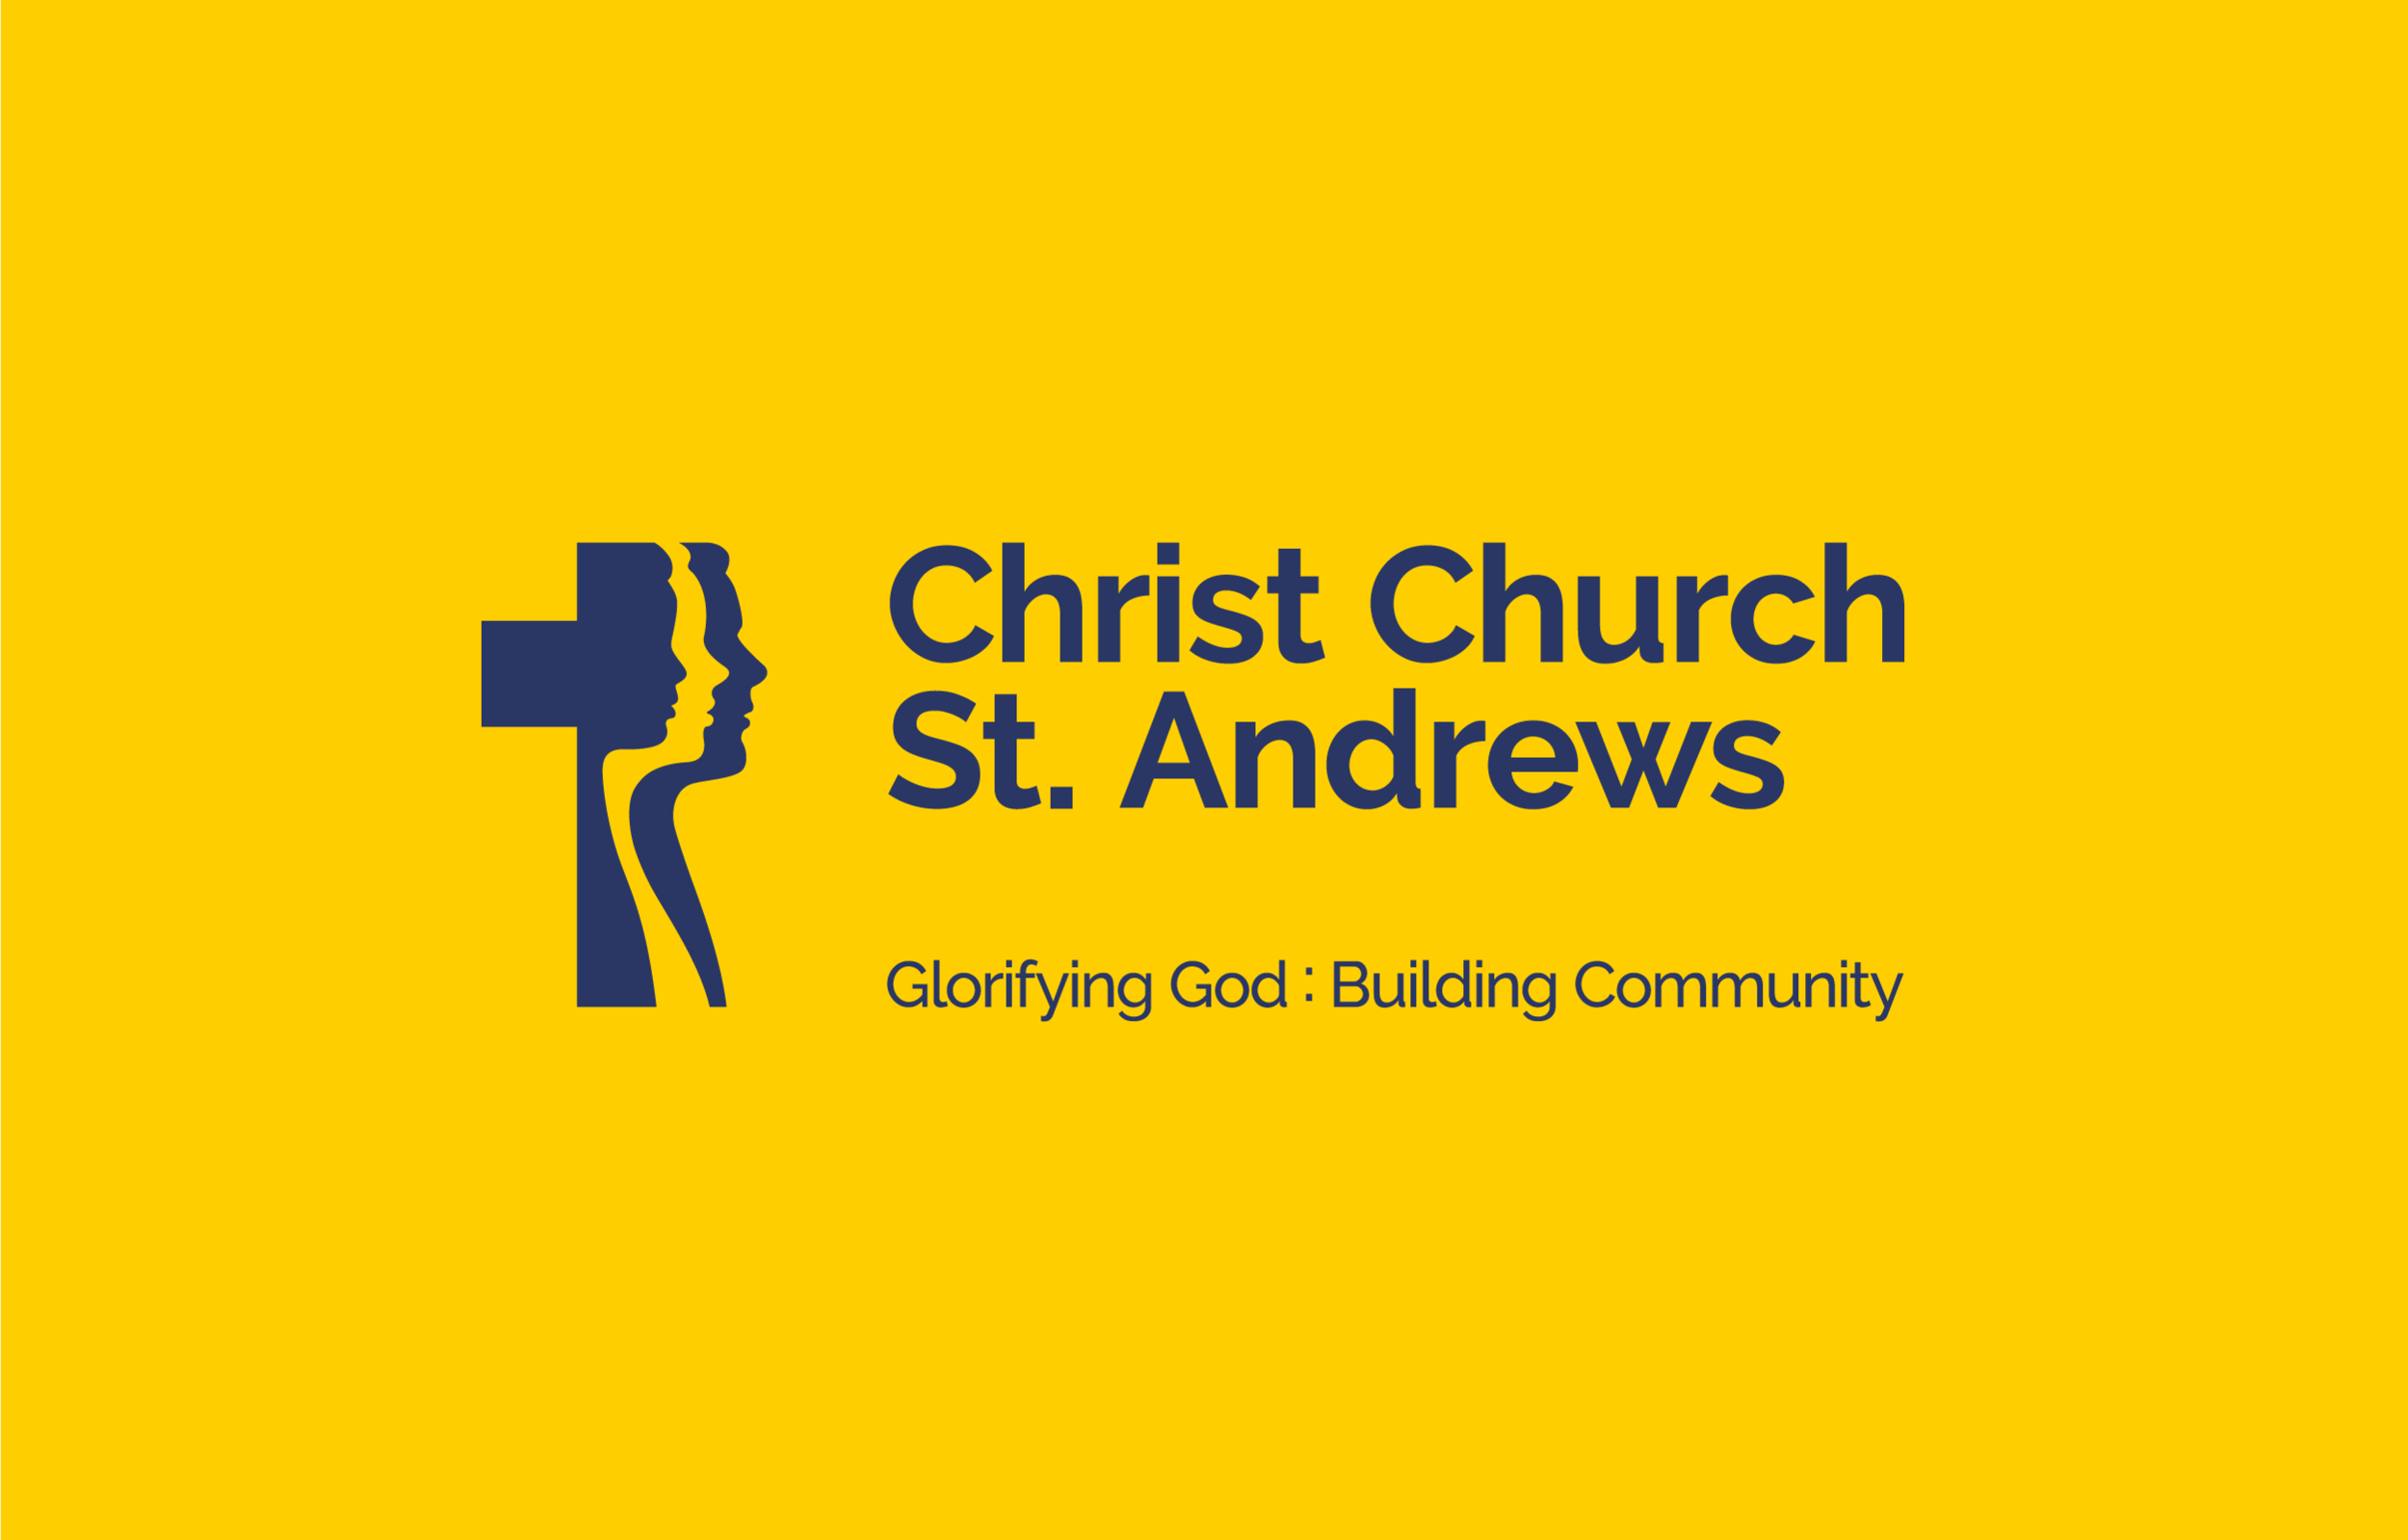 Logo Design and Brand Identity Kent - Christ Church St. Andrews